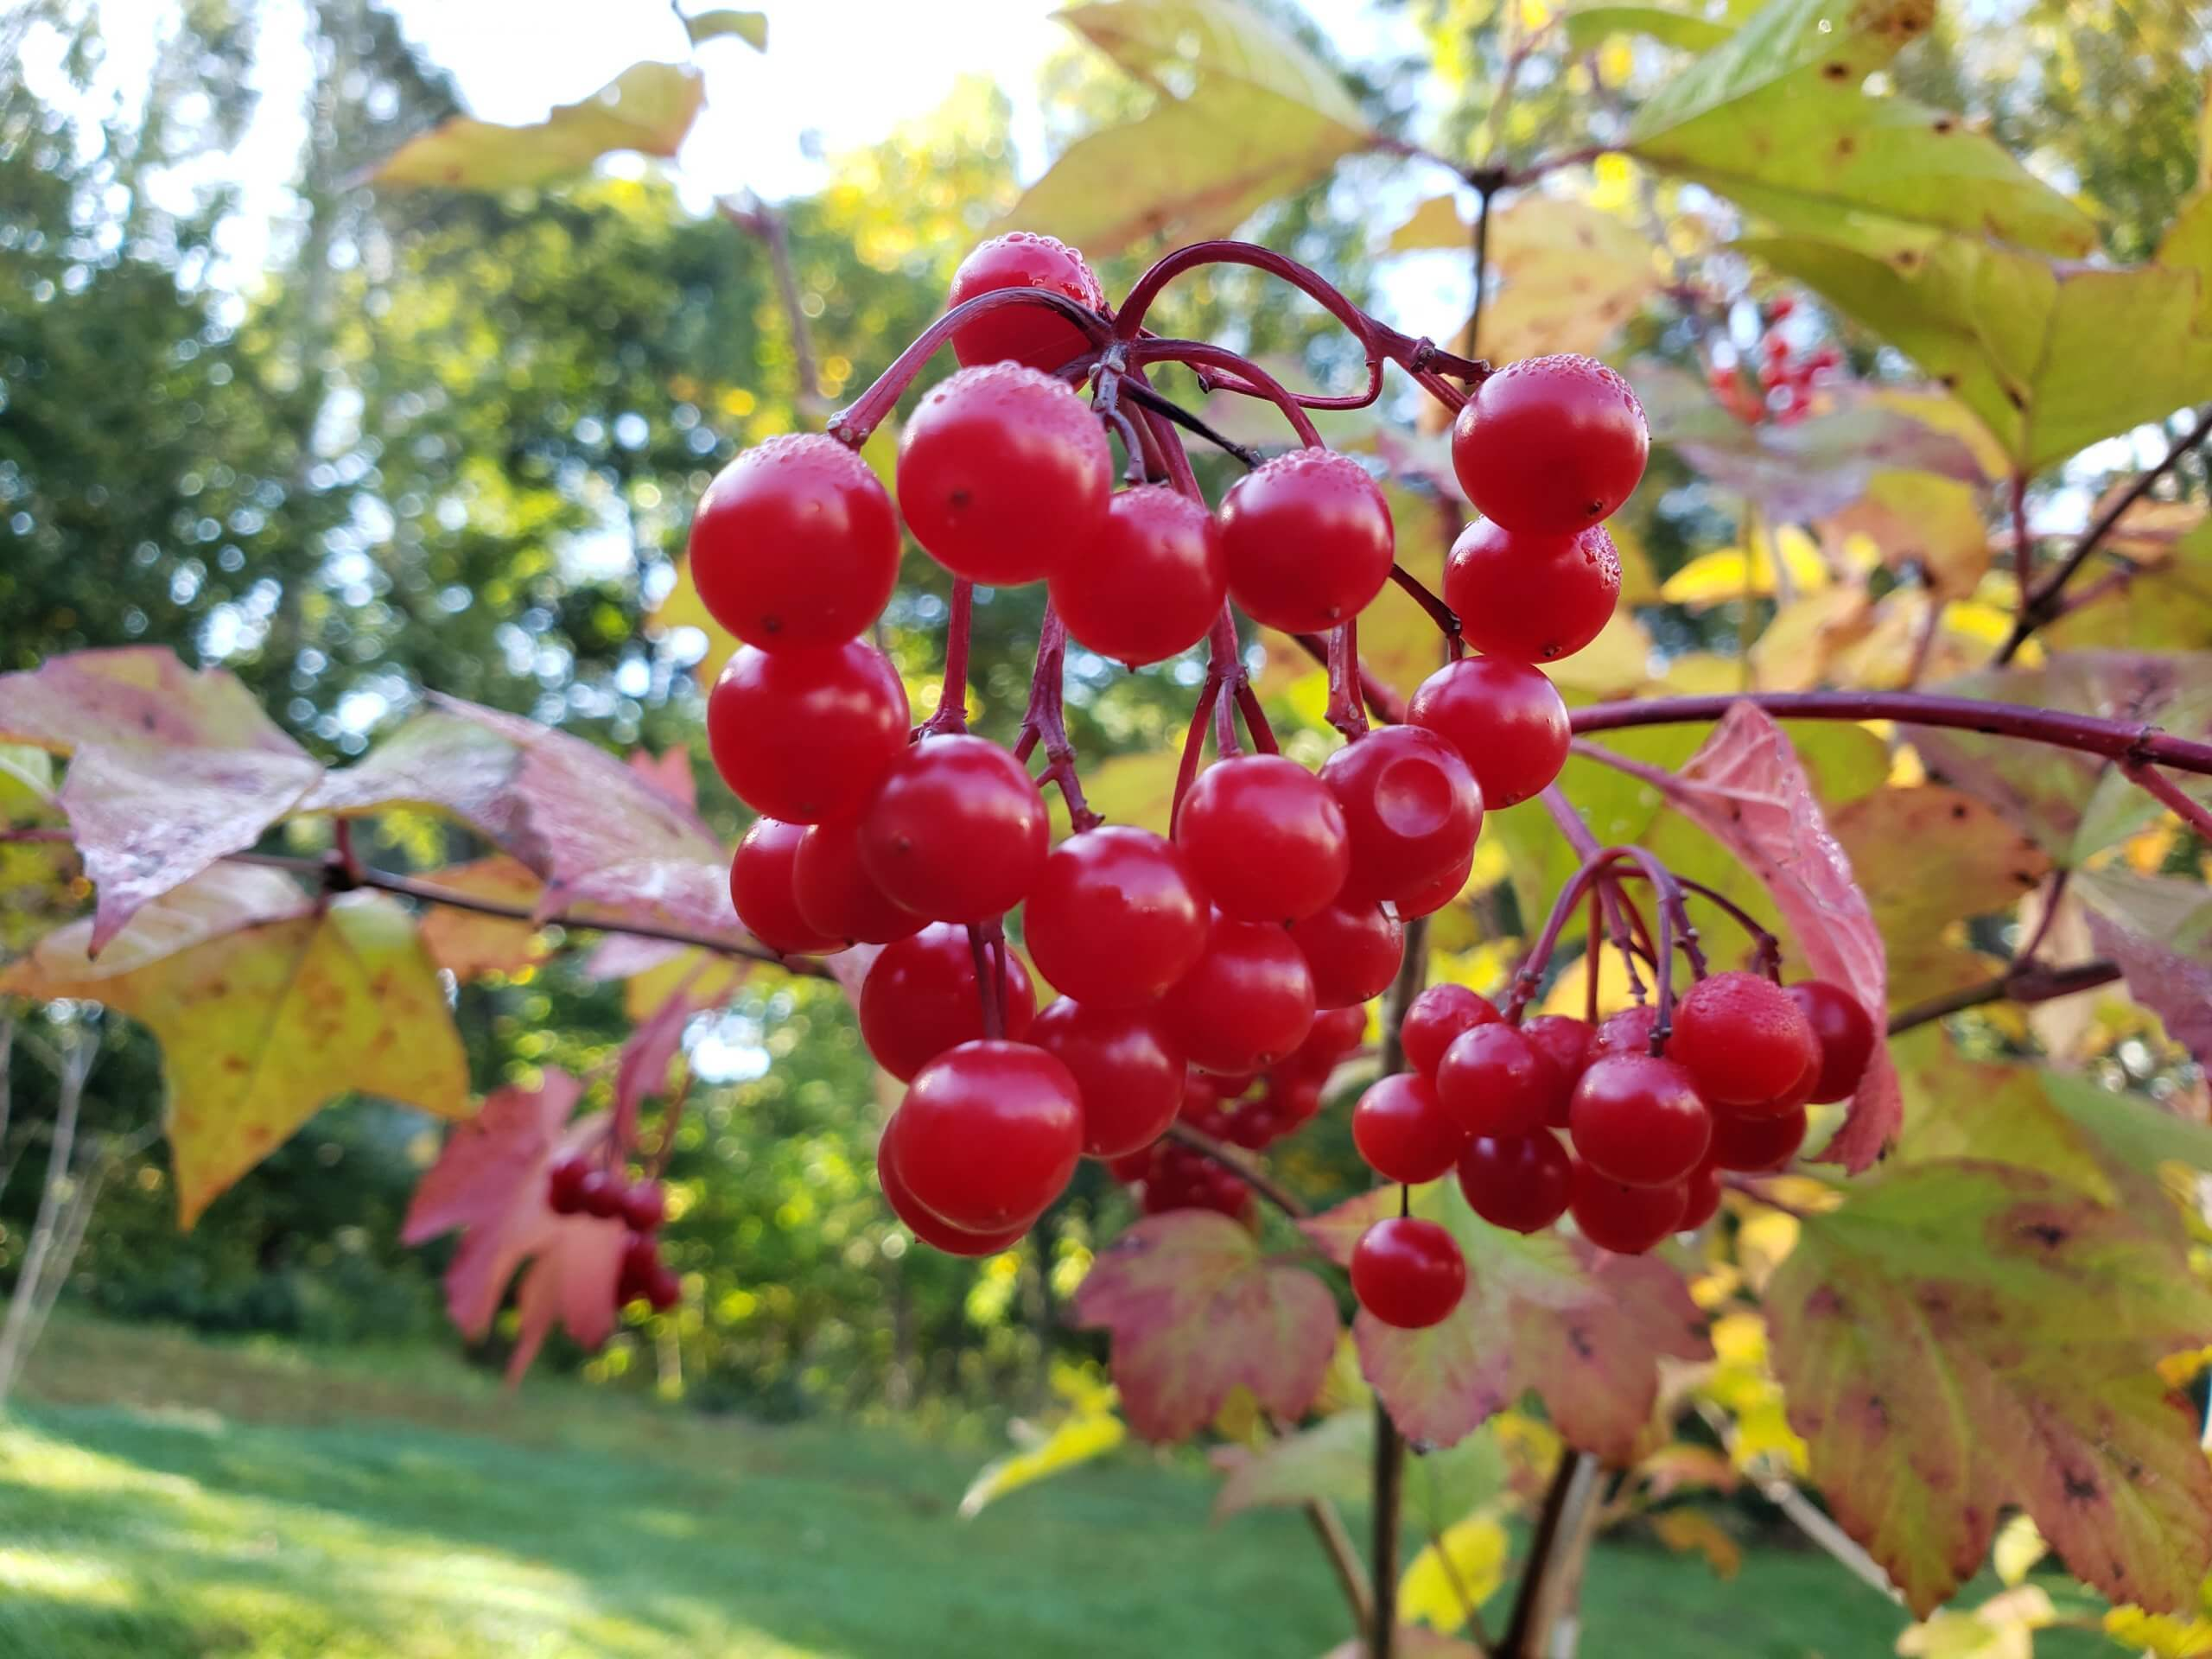 A close up of a cluster of bright red American Crannberrybush berries